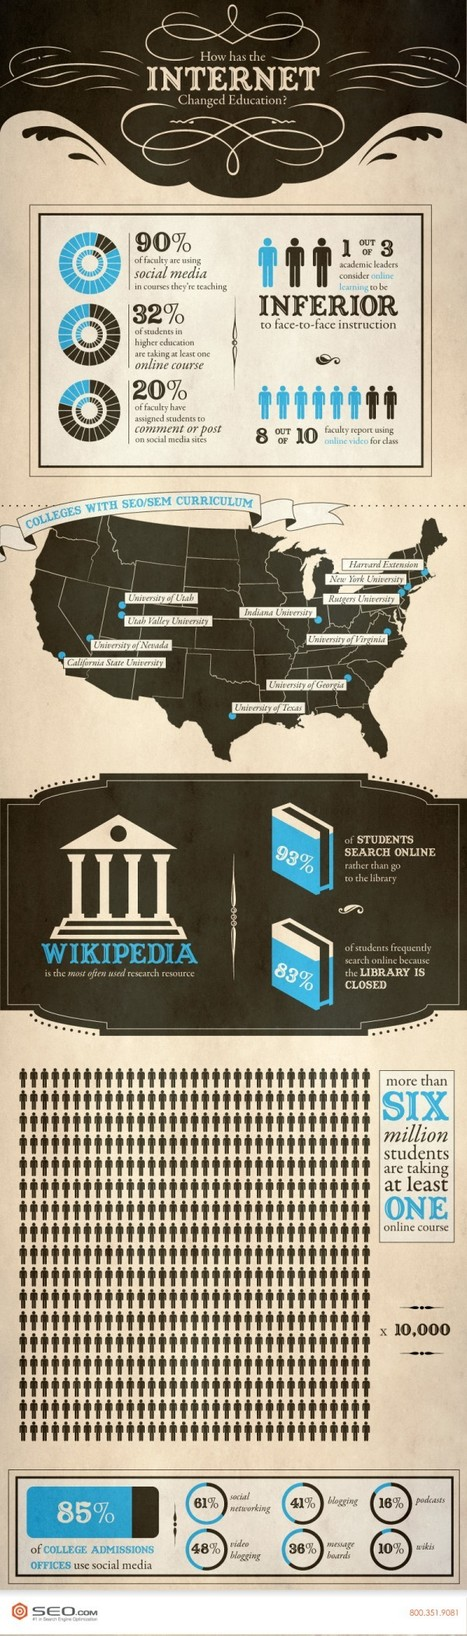 Case Study: How Wikipedia has changed Education from Internet [Infographic] | Academic Library News | Scoop.it